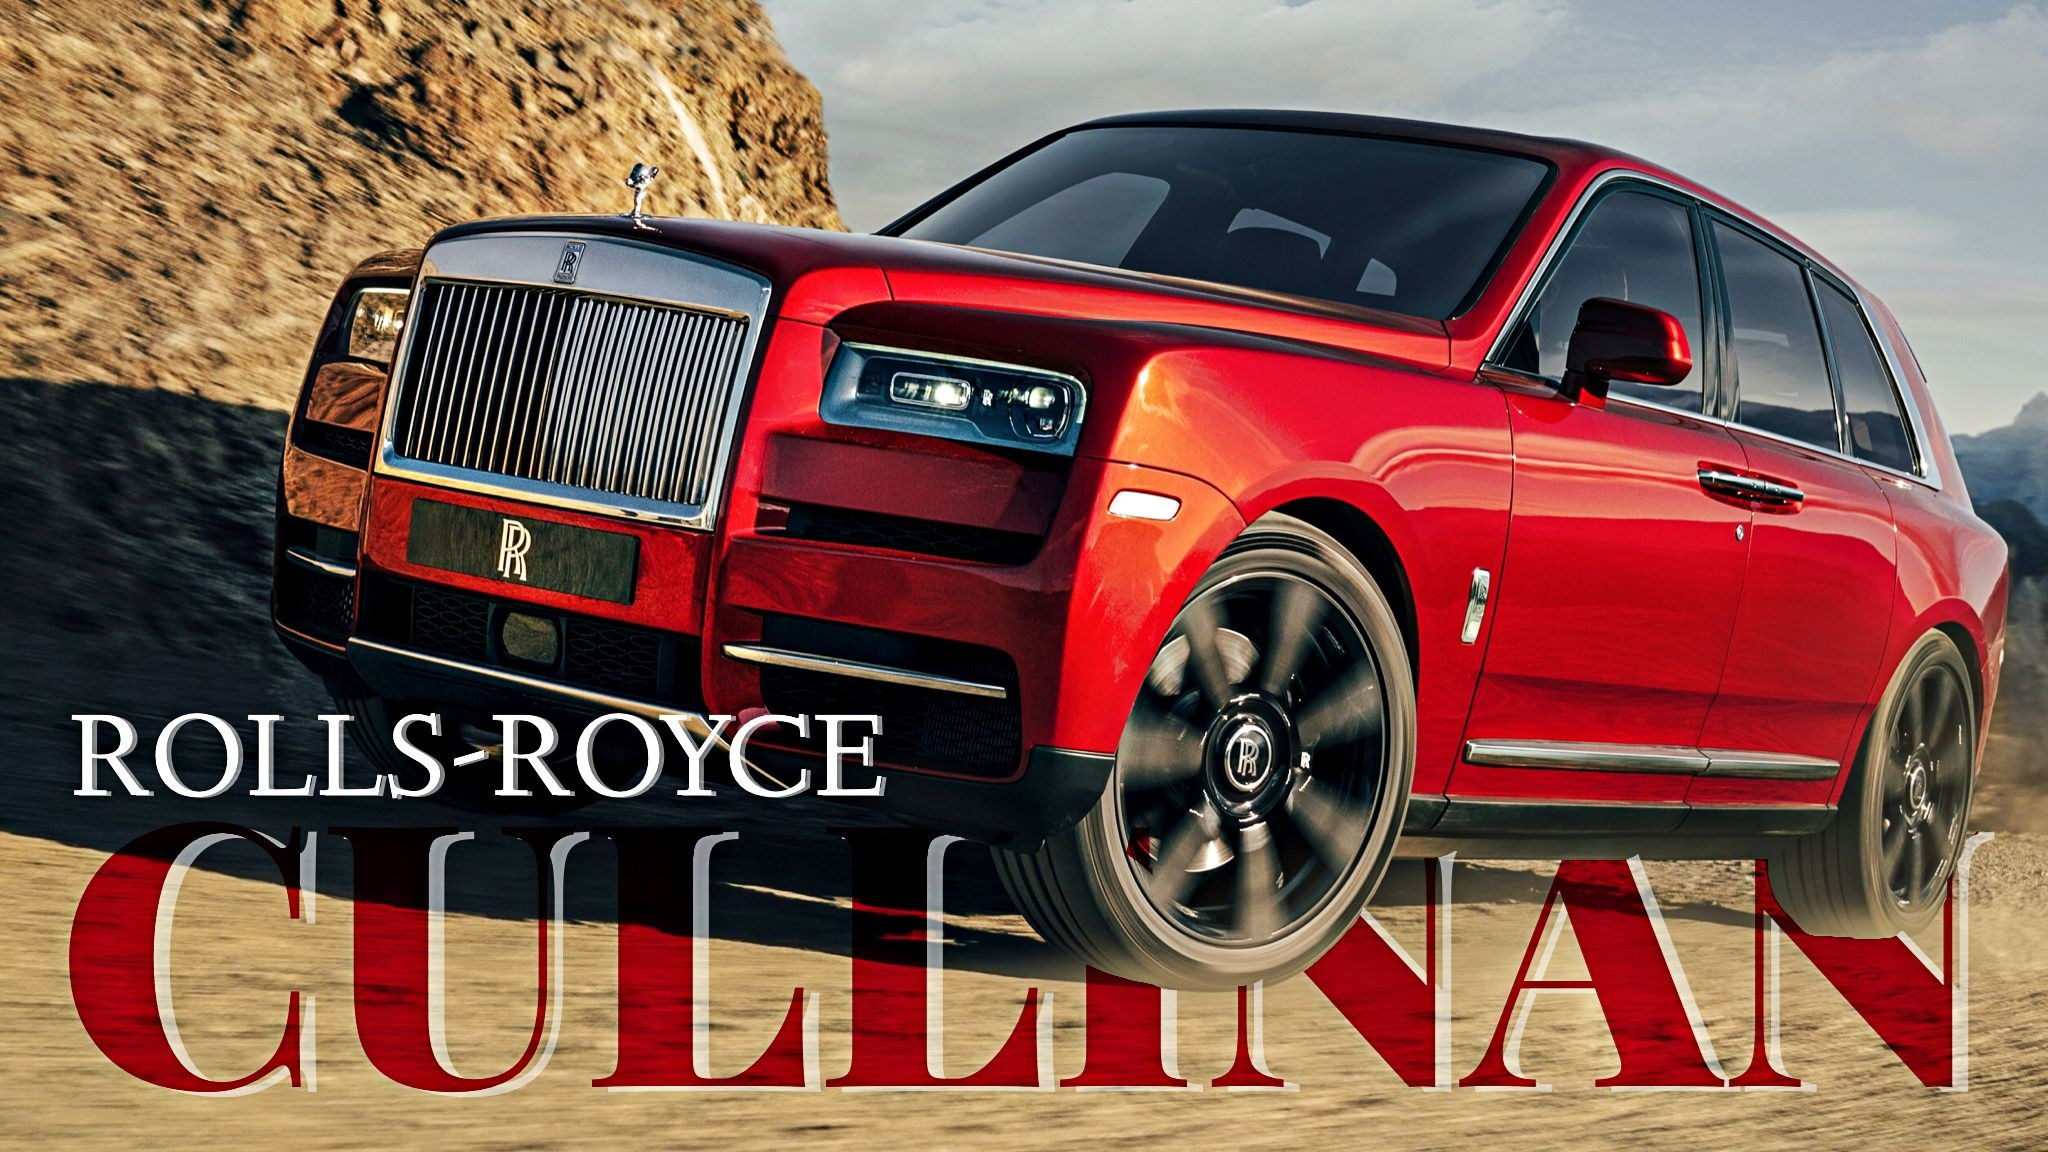 2019 Rolls-Royce Cullinan Takes Luxury Everywhere